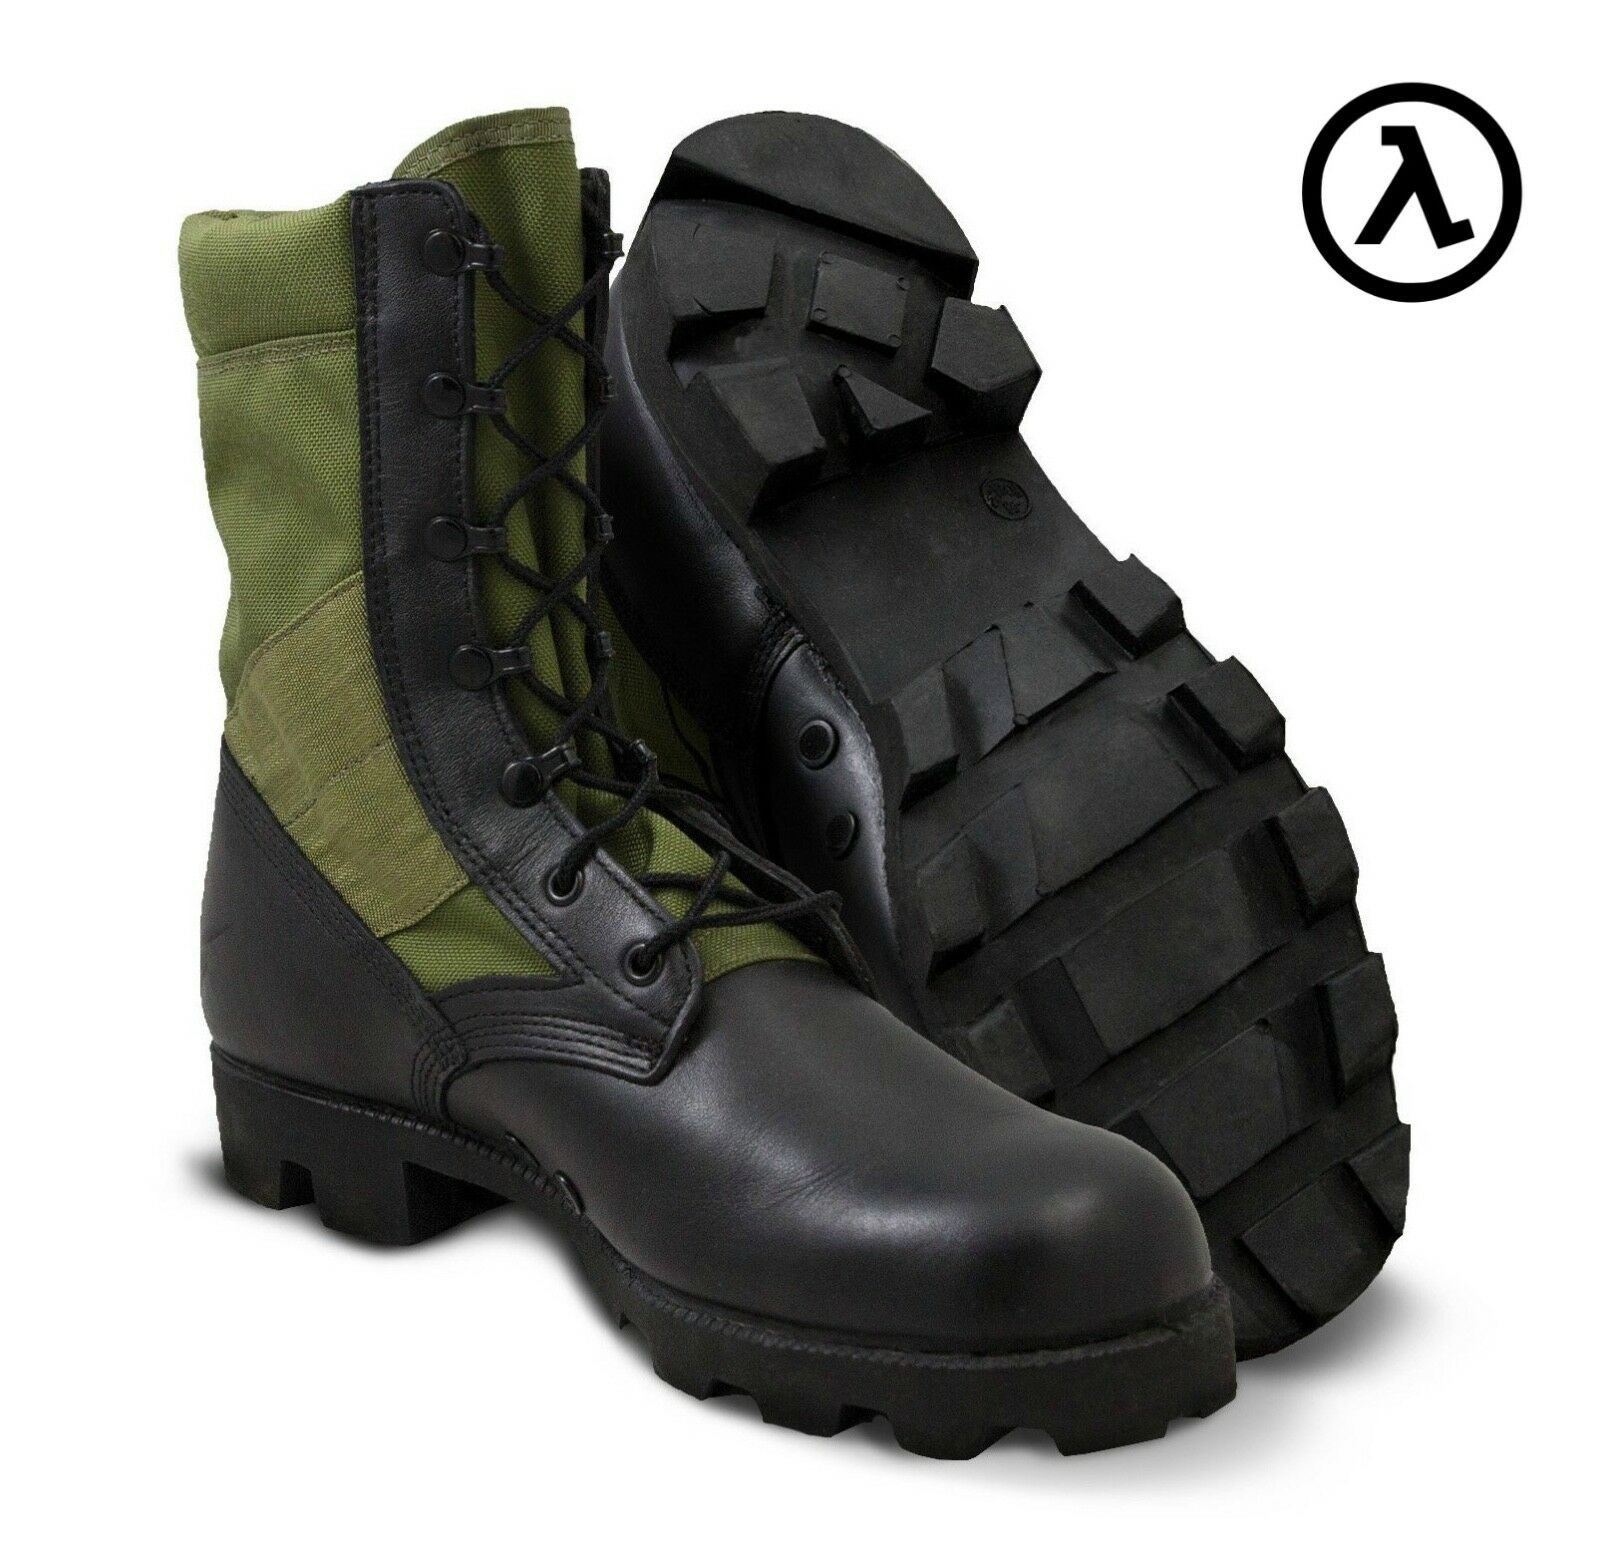 ALTAMA JUNGLE PX 10.5  MILITARY BOOTS 315506   OLIVE DRAB  ALL SIZES - NEW